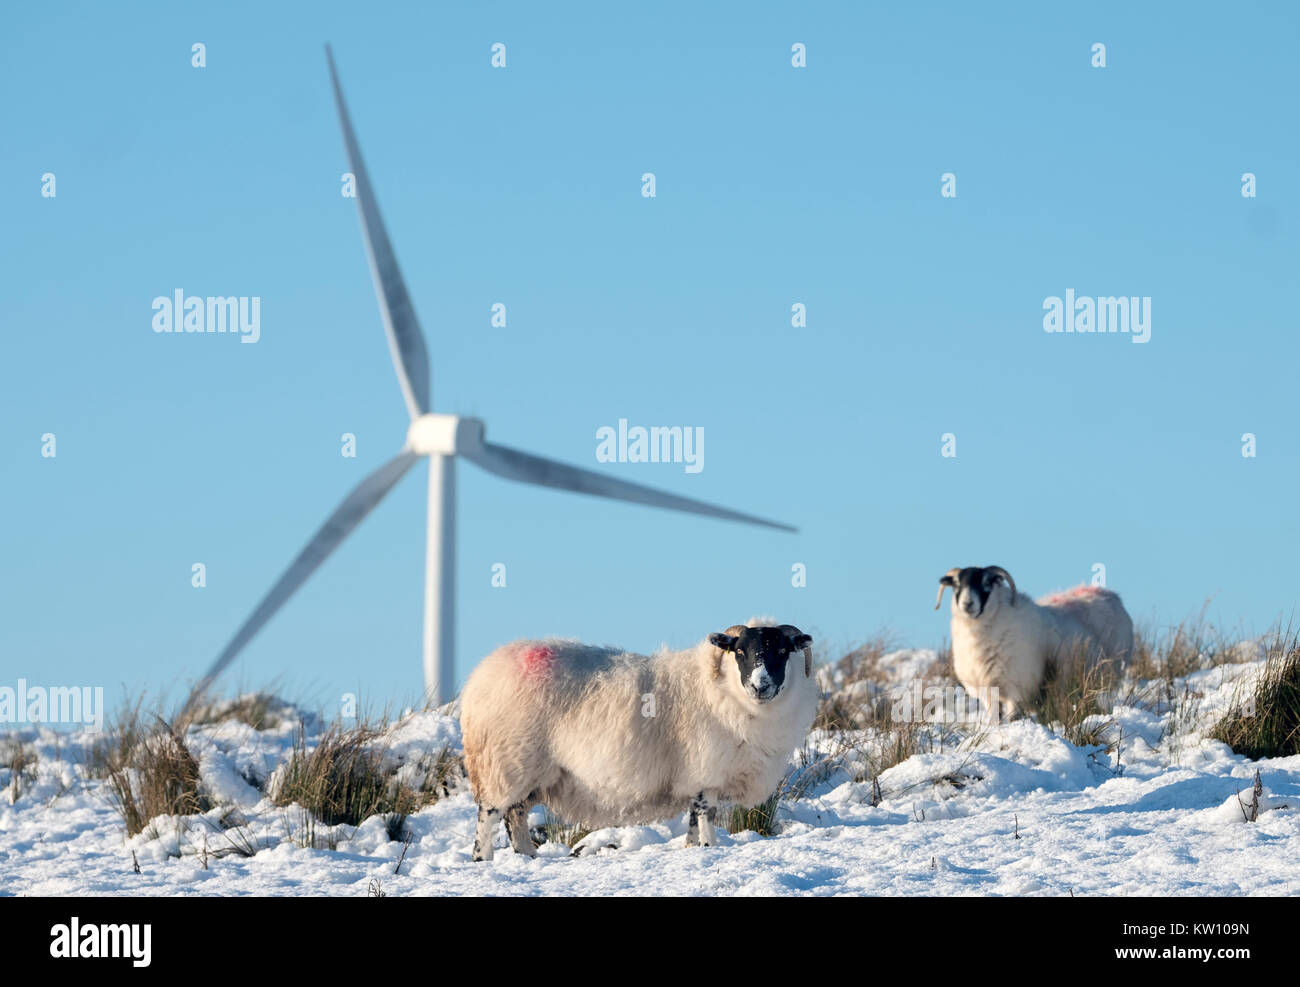 Blackface sheep foraging for food in the snow with wind turbines behind them, West Lothian, Scotland. - Stock Image